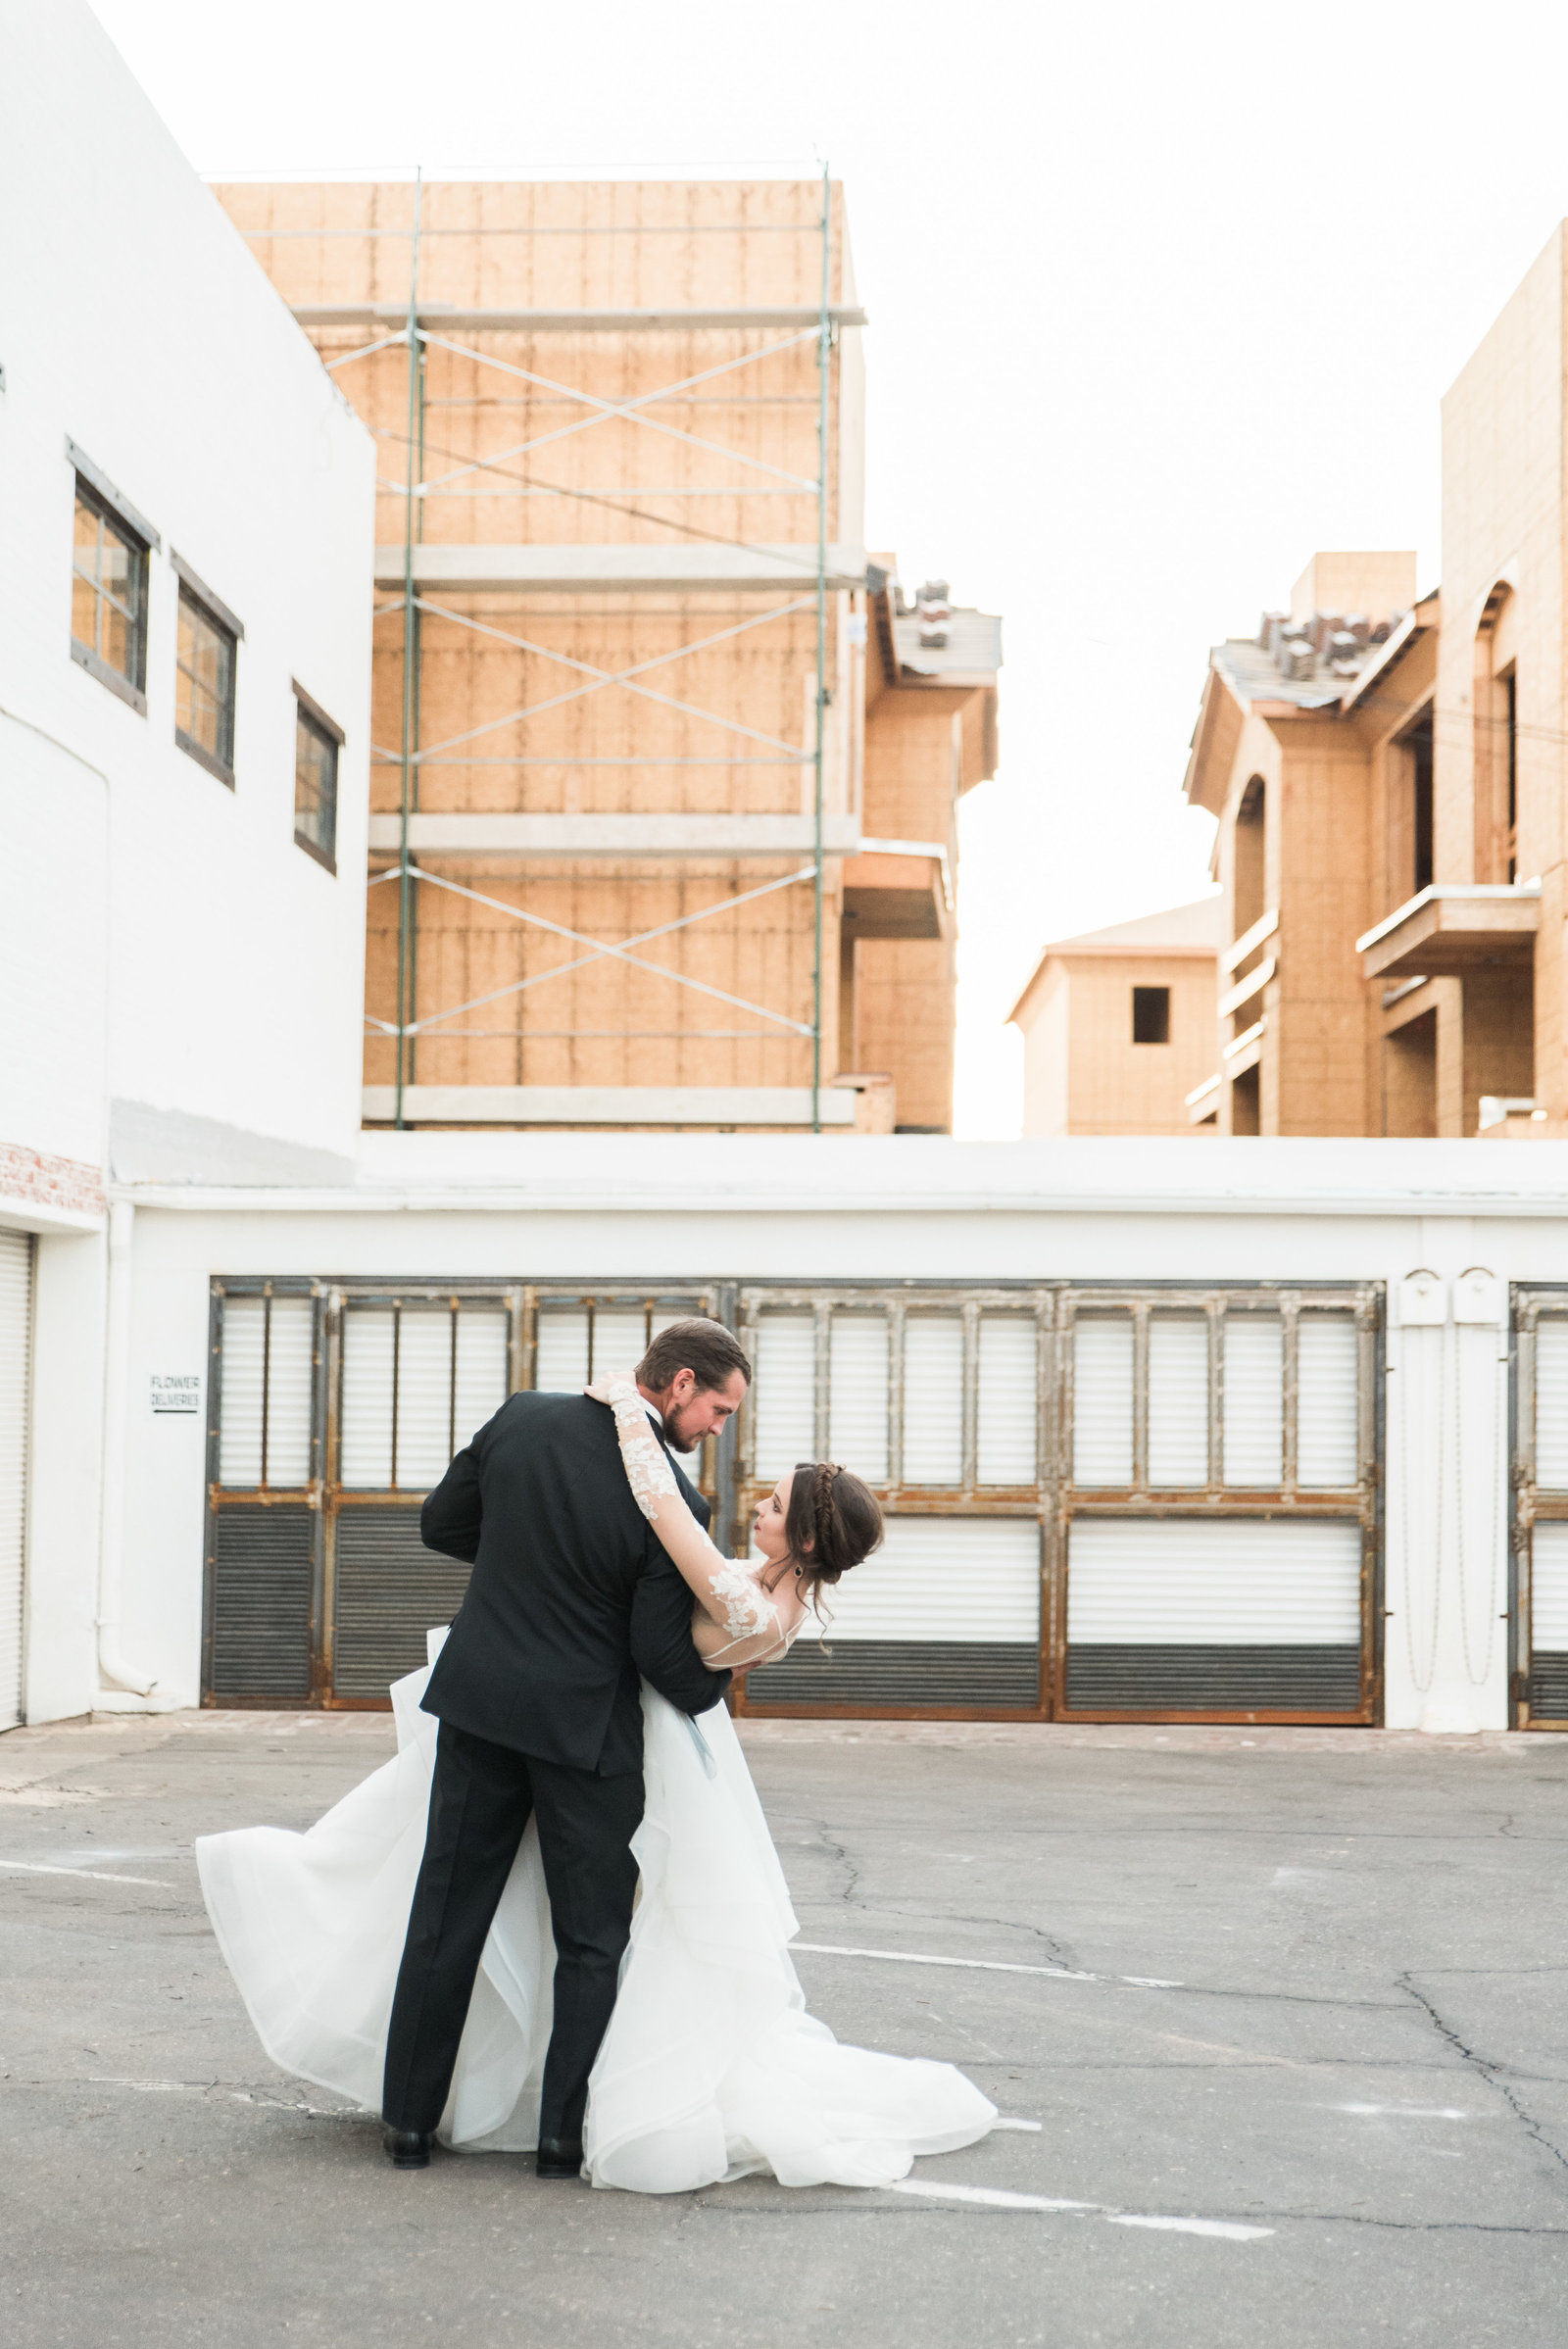 Downtown Tucson Bride and Groom dancing at wedding photo